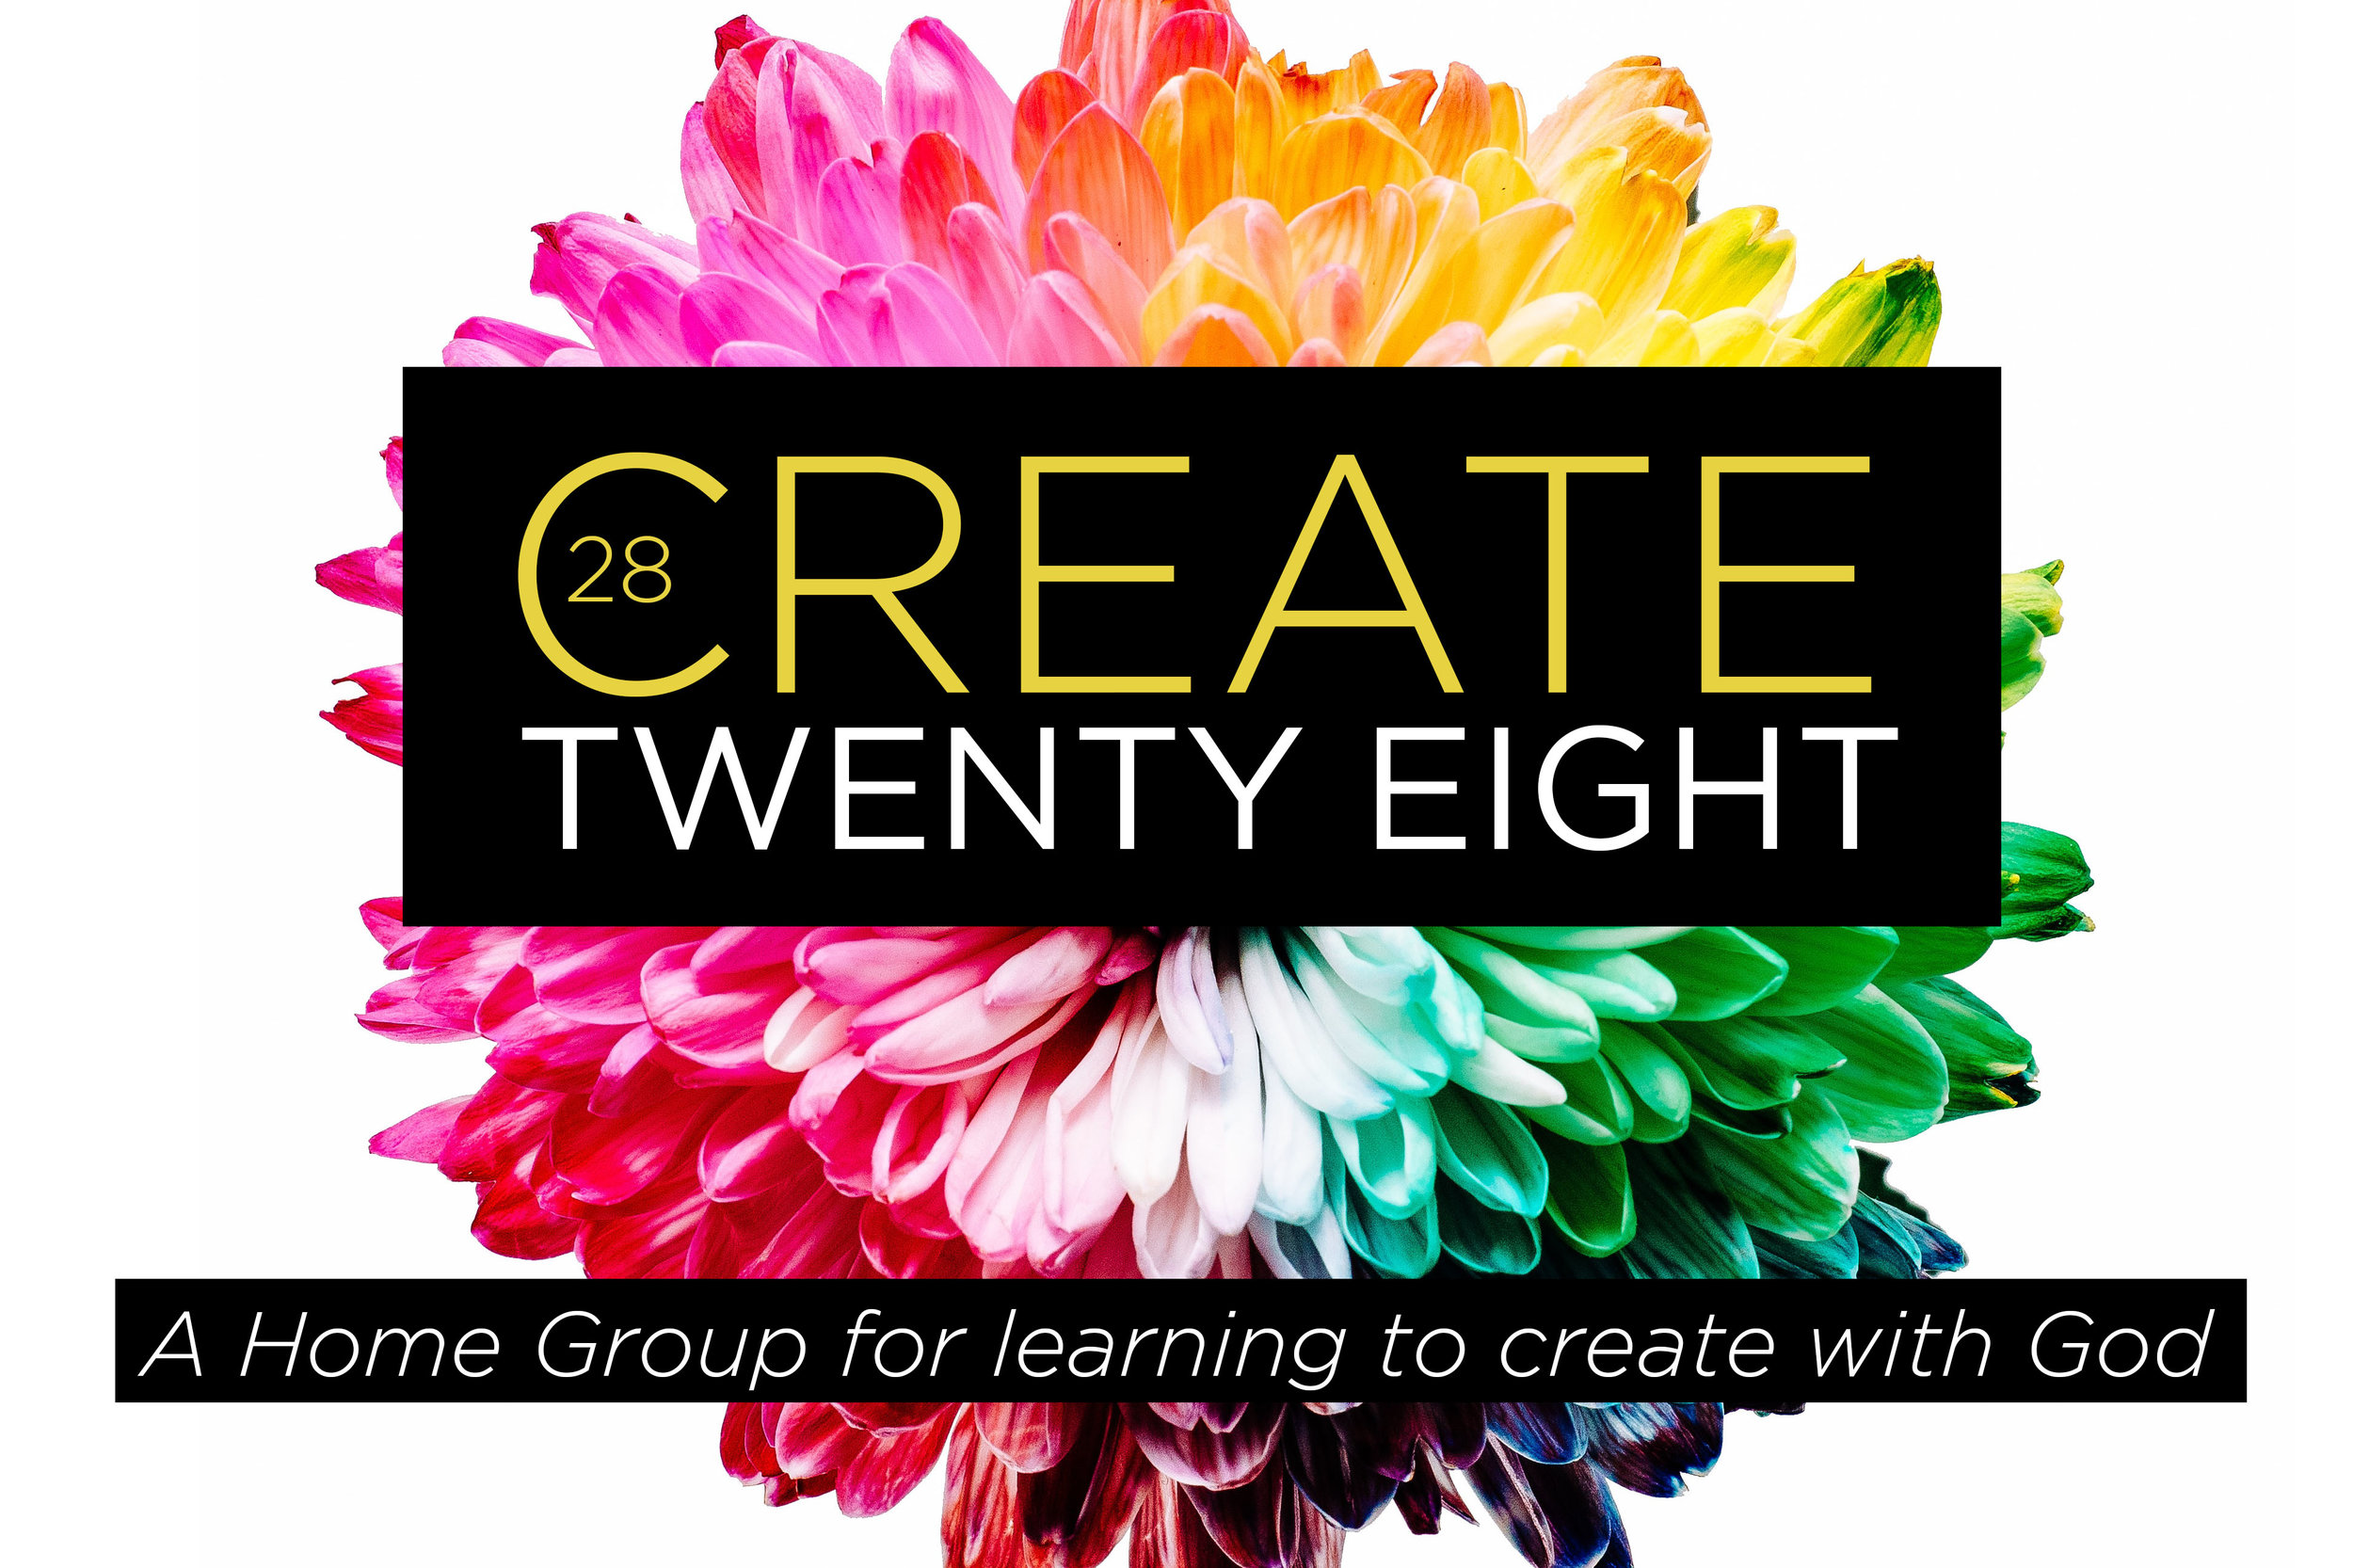 Create28 HomeGroup   VOT is launching Create 28, a HomeGroup to foster creativity within community! Everyone carries an expression of God's creativity in them - don't count yourself out! Create 28 will be going through Theresa Dedmon's curriculum in order to cultivate a greater understanding of God's creative heart for you!   The groups regular meeting time will be Thursday Nights throughout April-May!